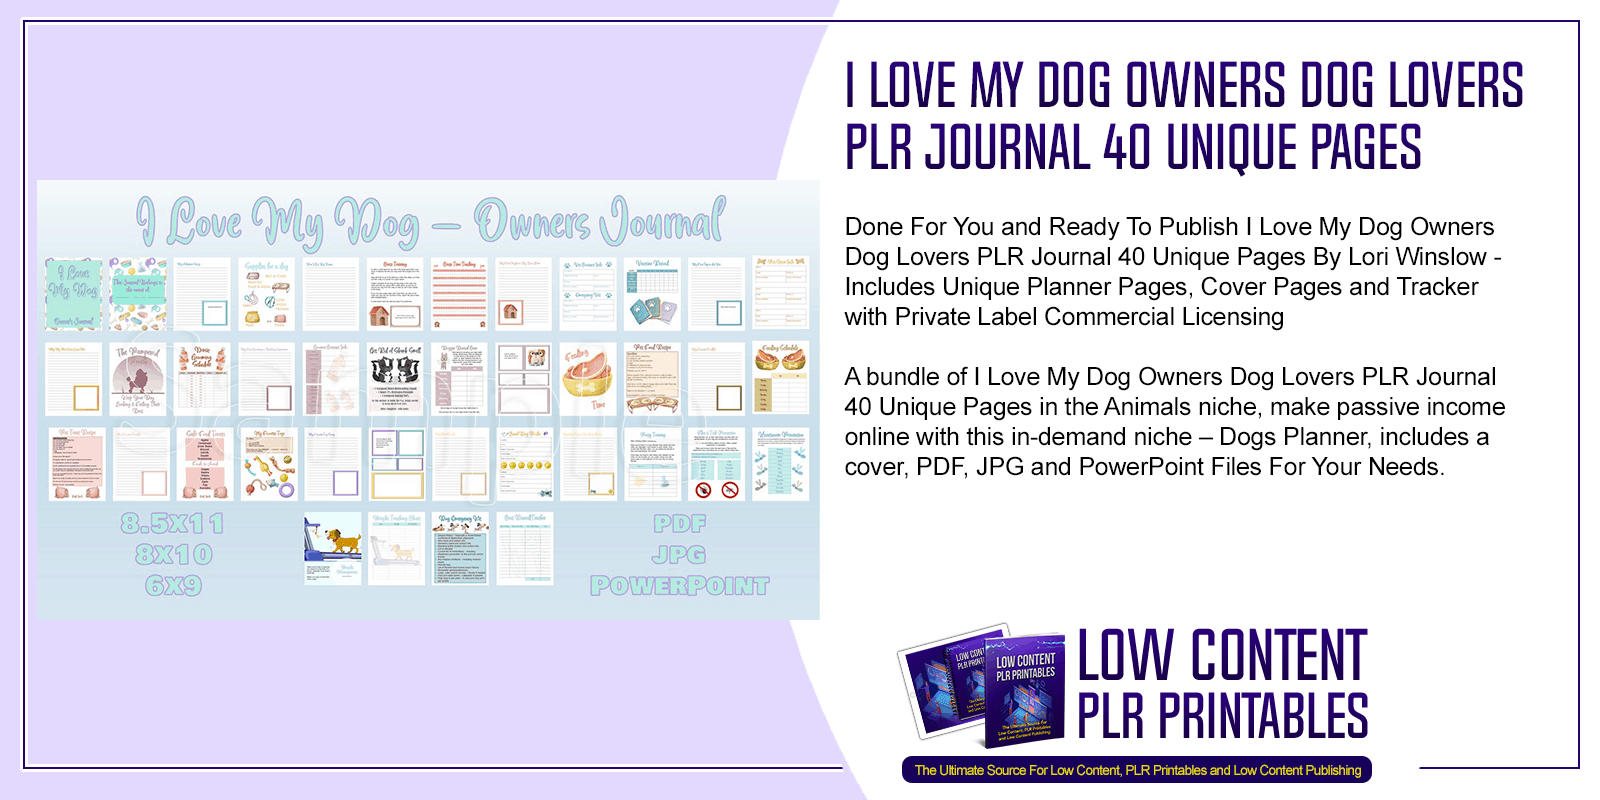 I Love My Dog Owners Dog Lovers PLR Journal 40 Unique Pages